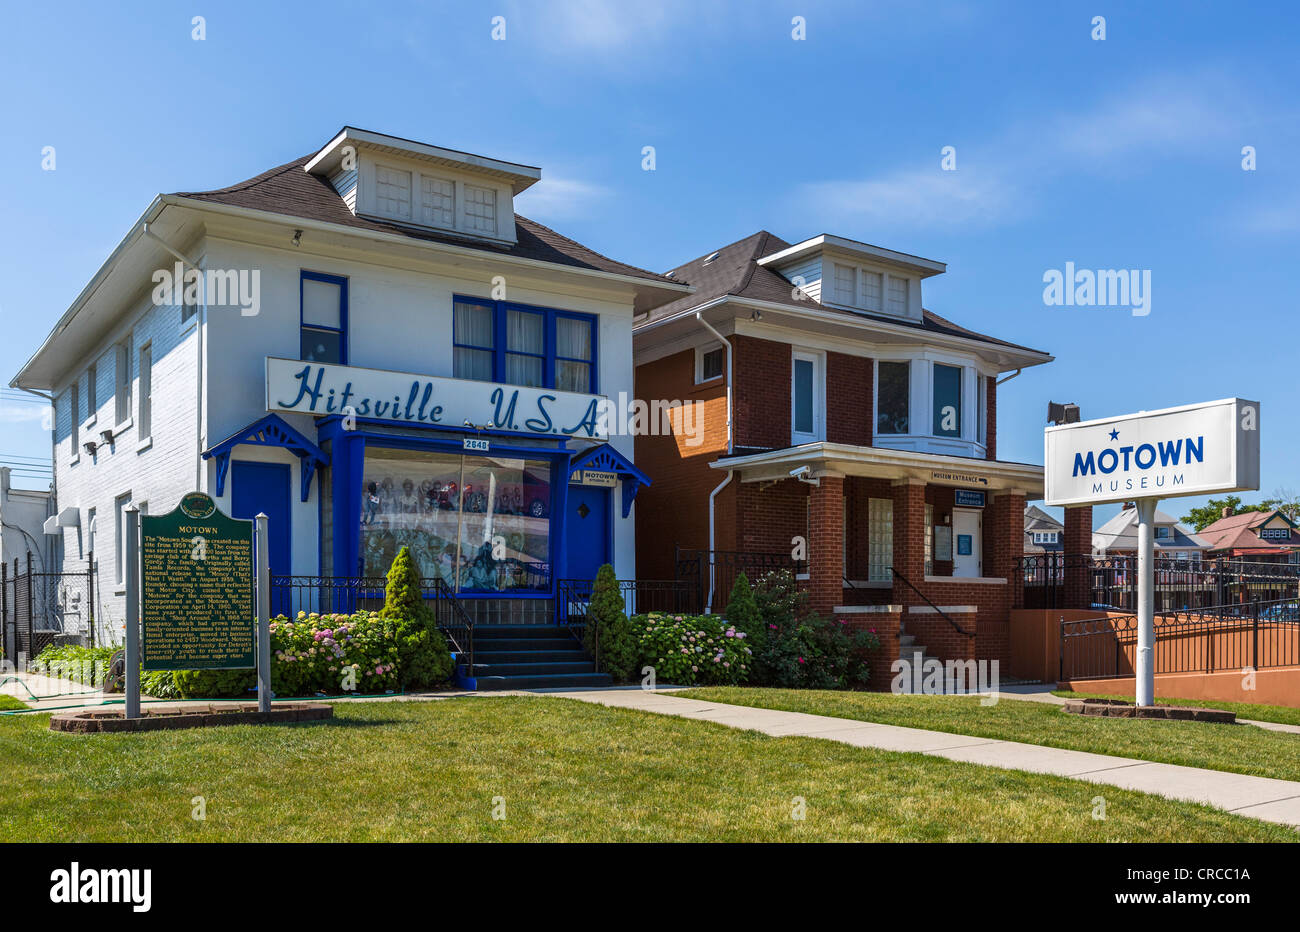 The Motown Museum, a recording studio from 1959-1972, Detroit, Michigan, USA - Stock Image